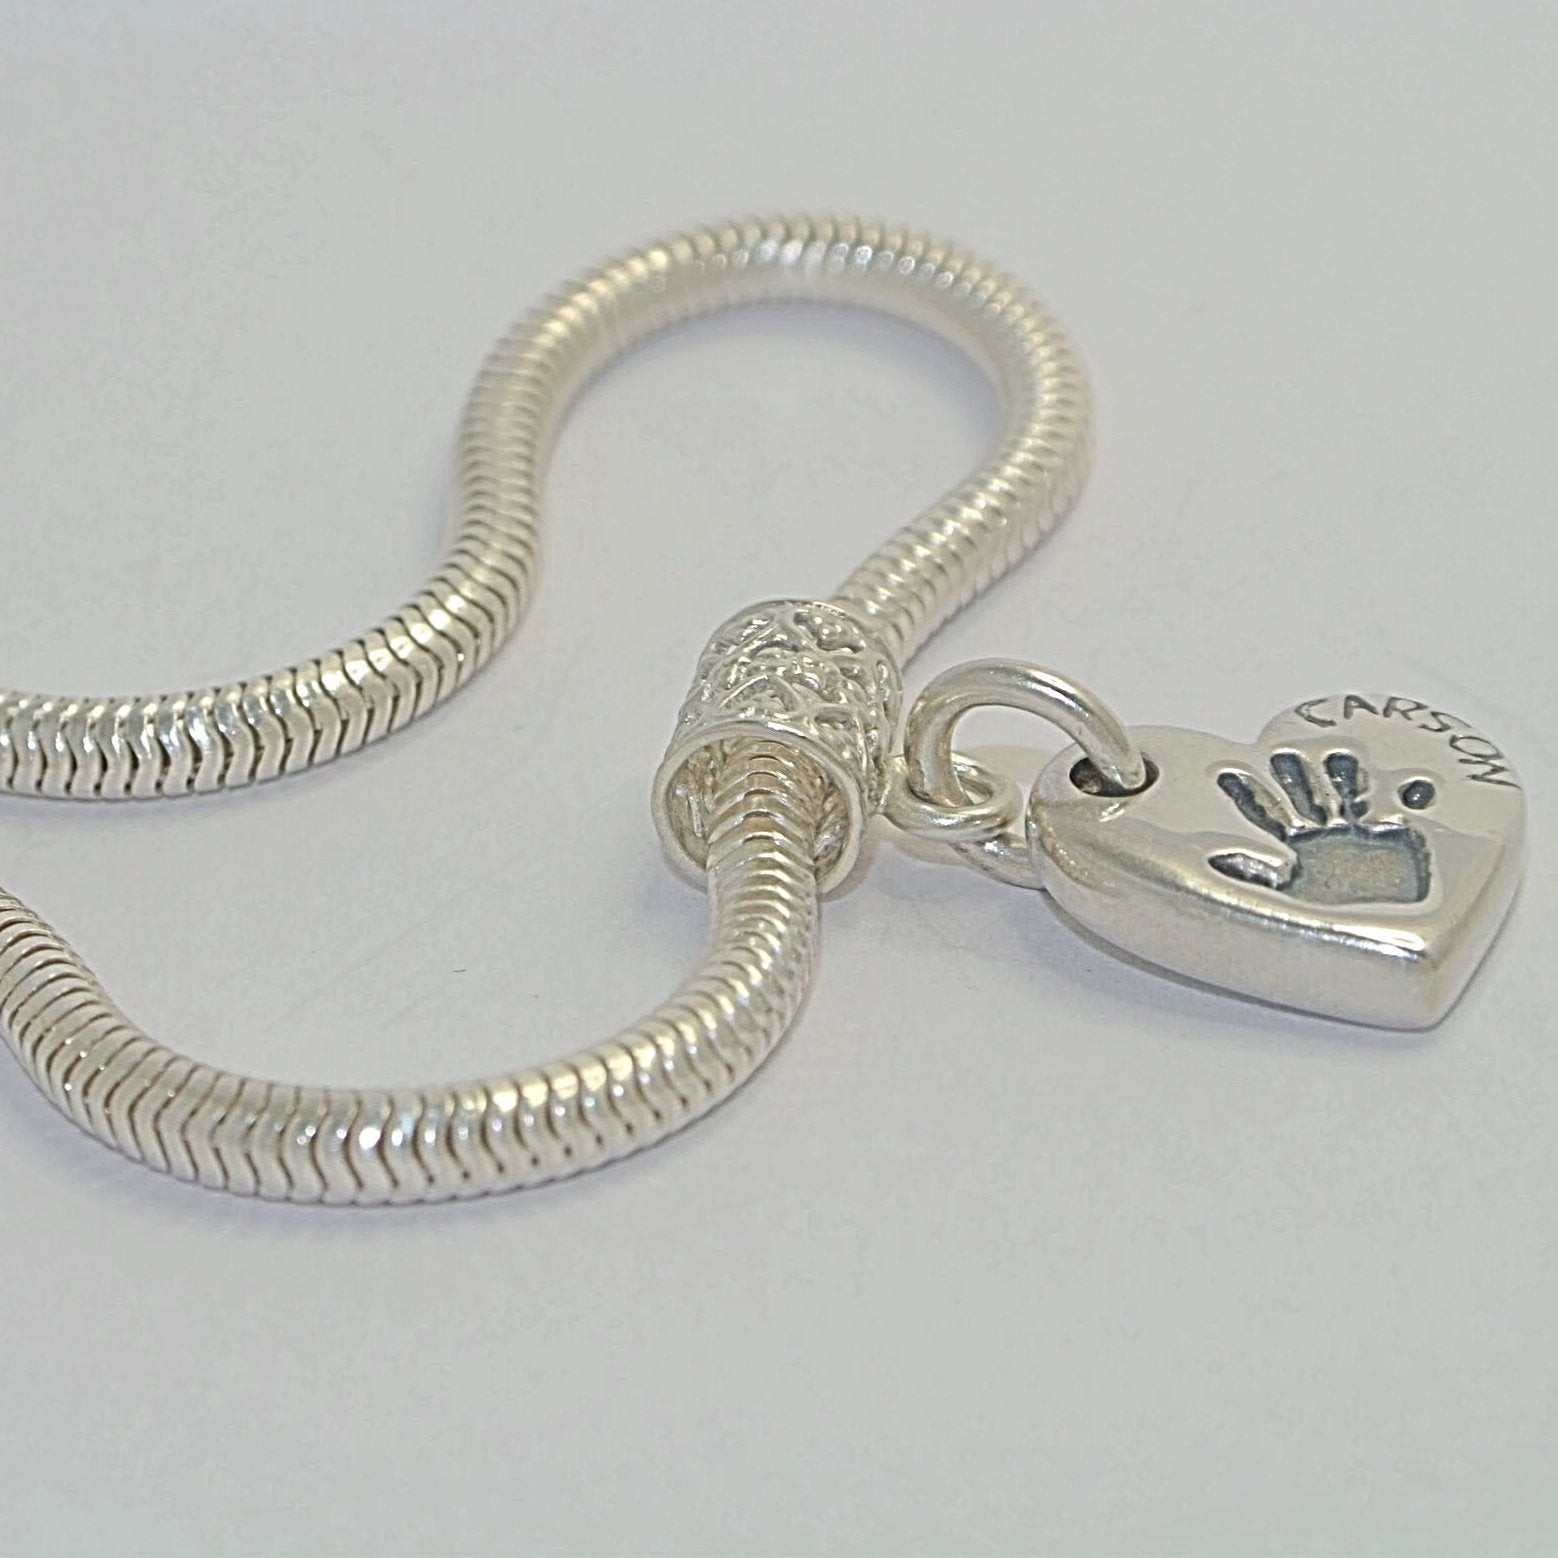 Double-Sided Bracelet Charm Sterling Silver Handprint Keepsake Jewellery